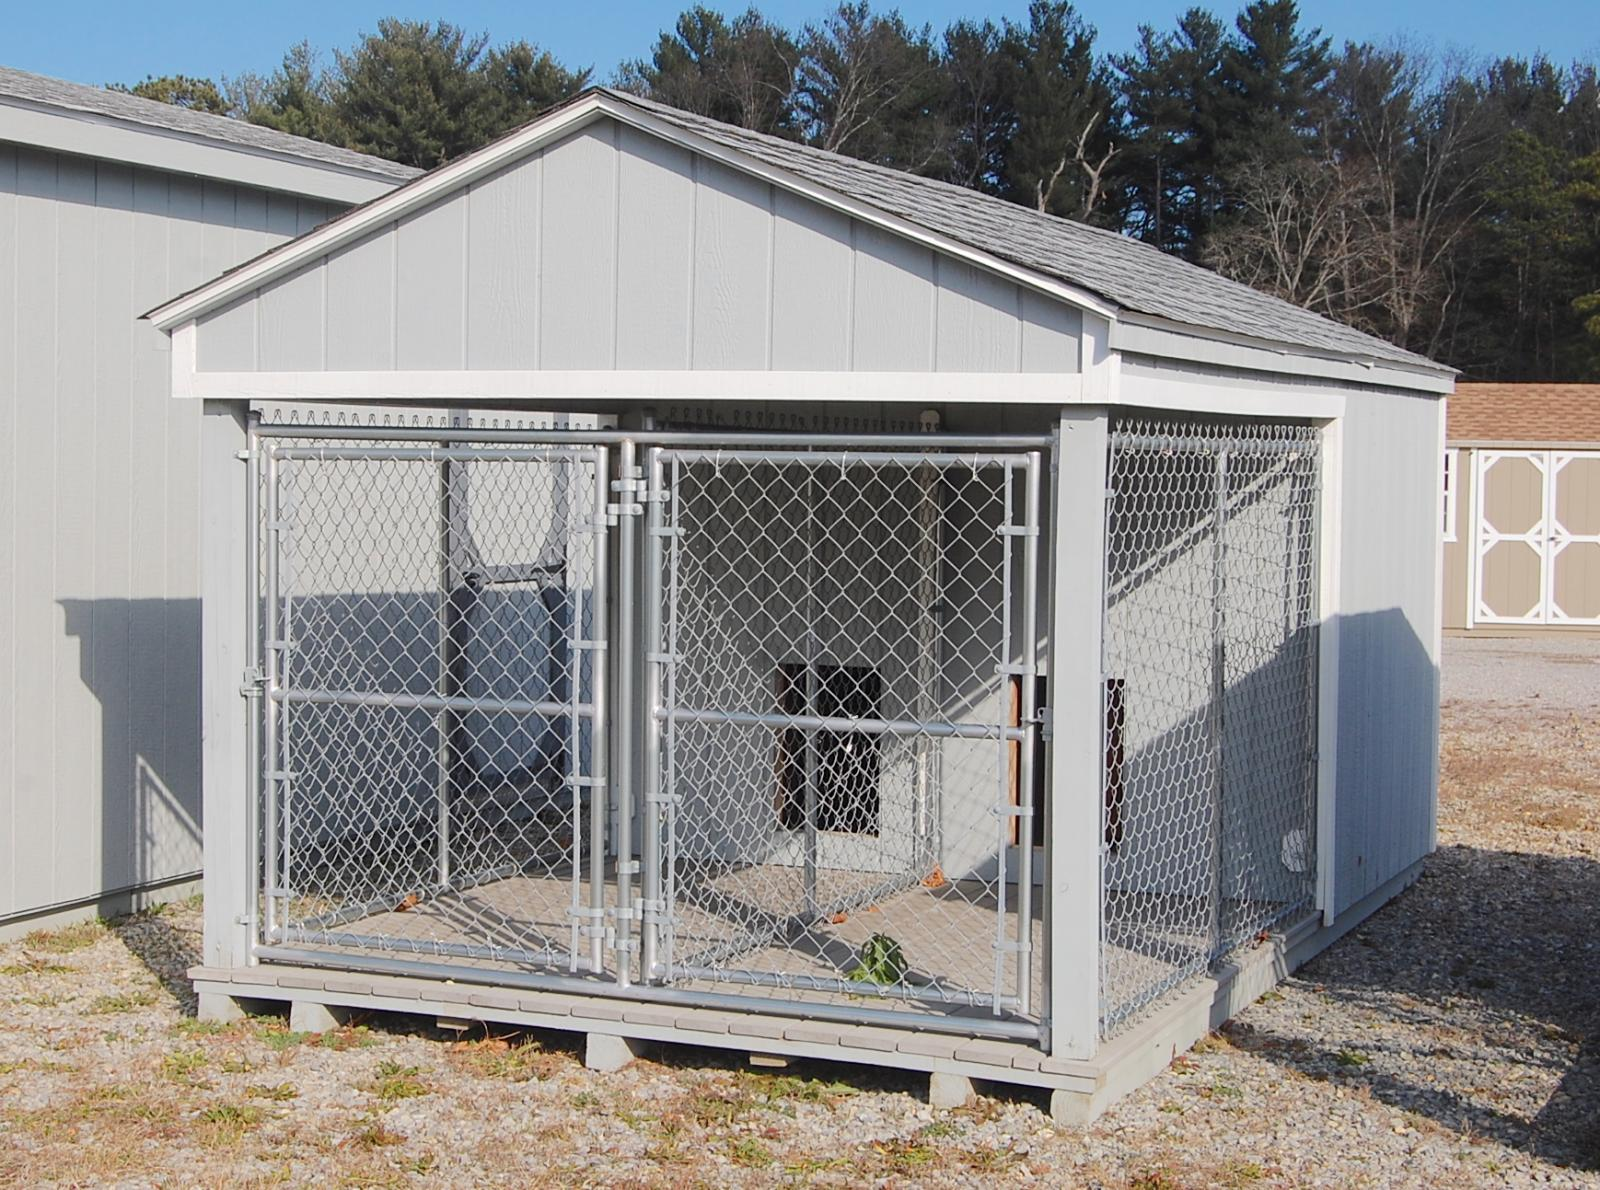 8x14 Large Double Kennel Pine Creek Structures